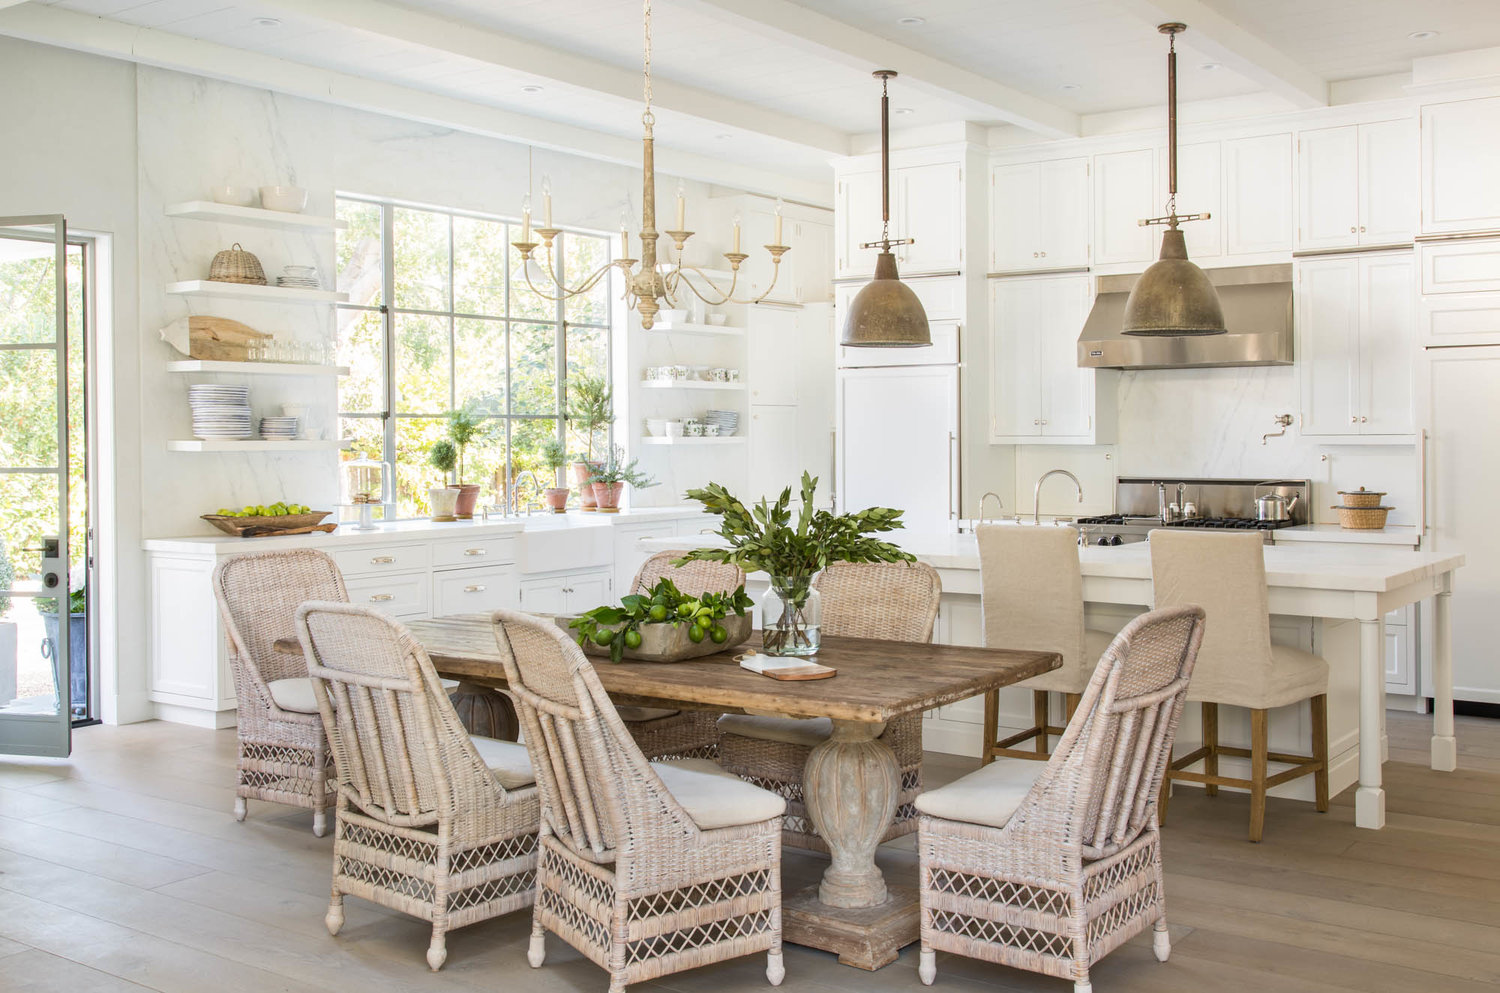 Modern farmhouse style in white kitchen and dining area with antique furnishings, open shelves, and French oak wood floors